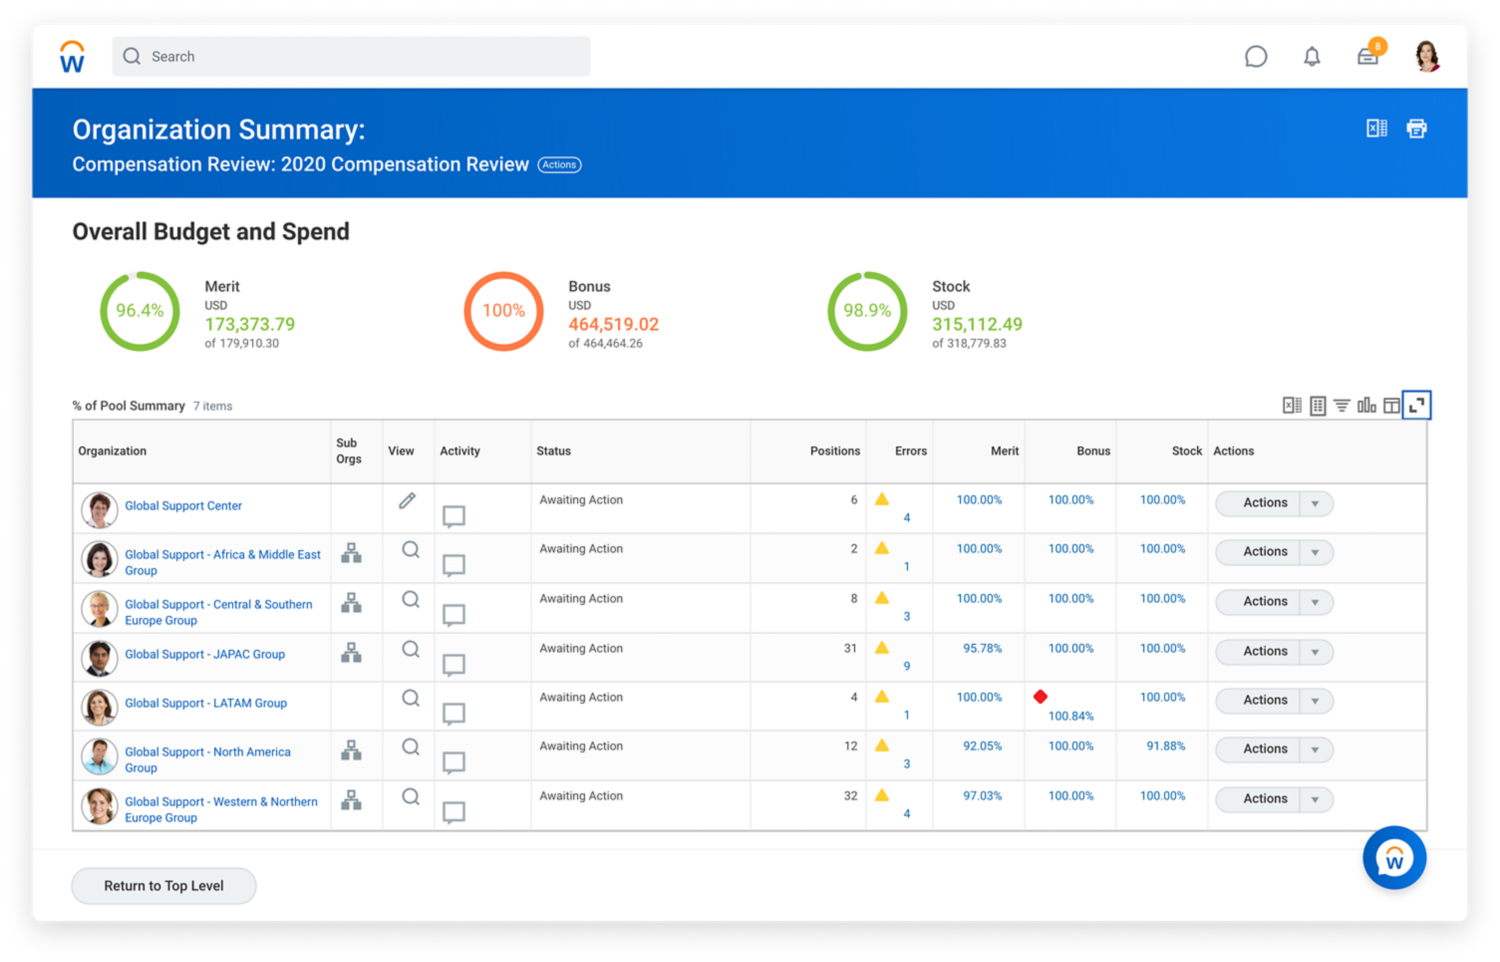 Compensation management dashboard showing organization summary with overall budget and spend.